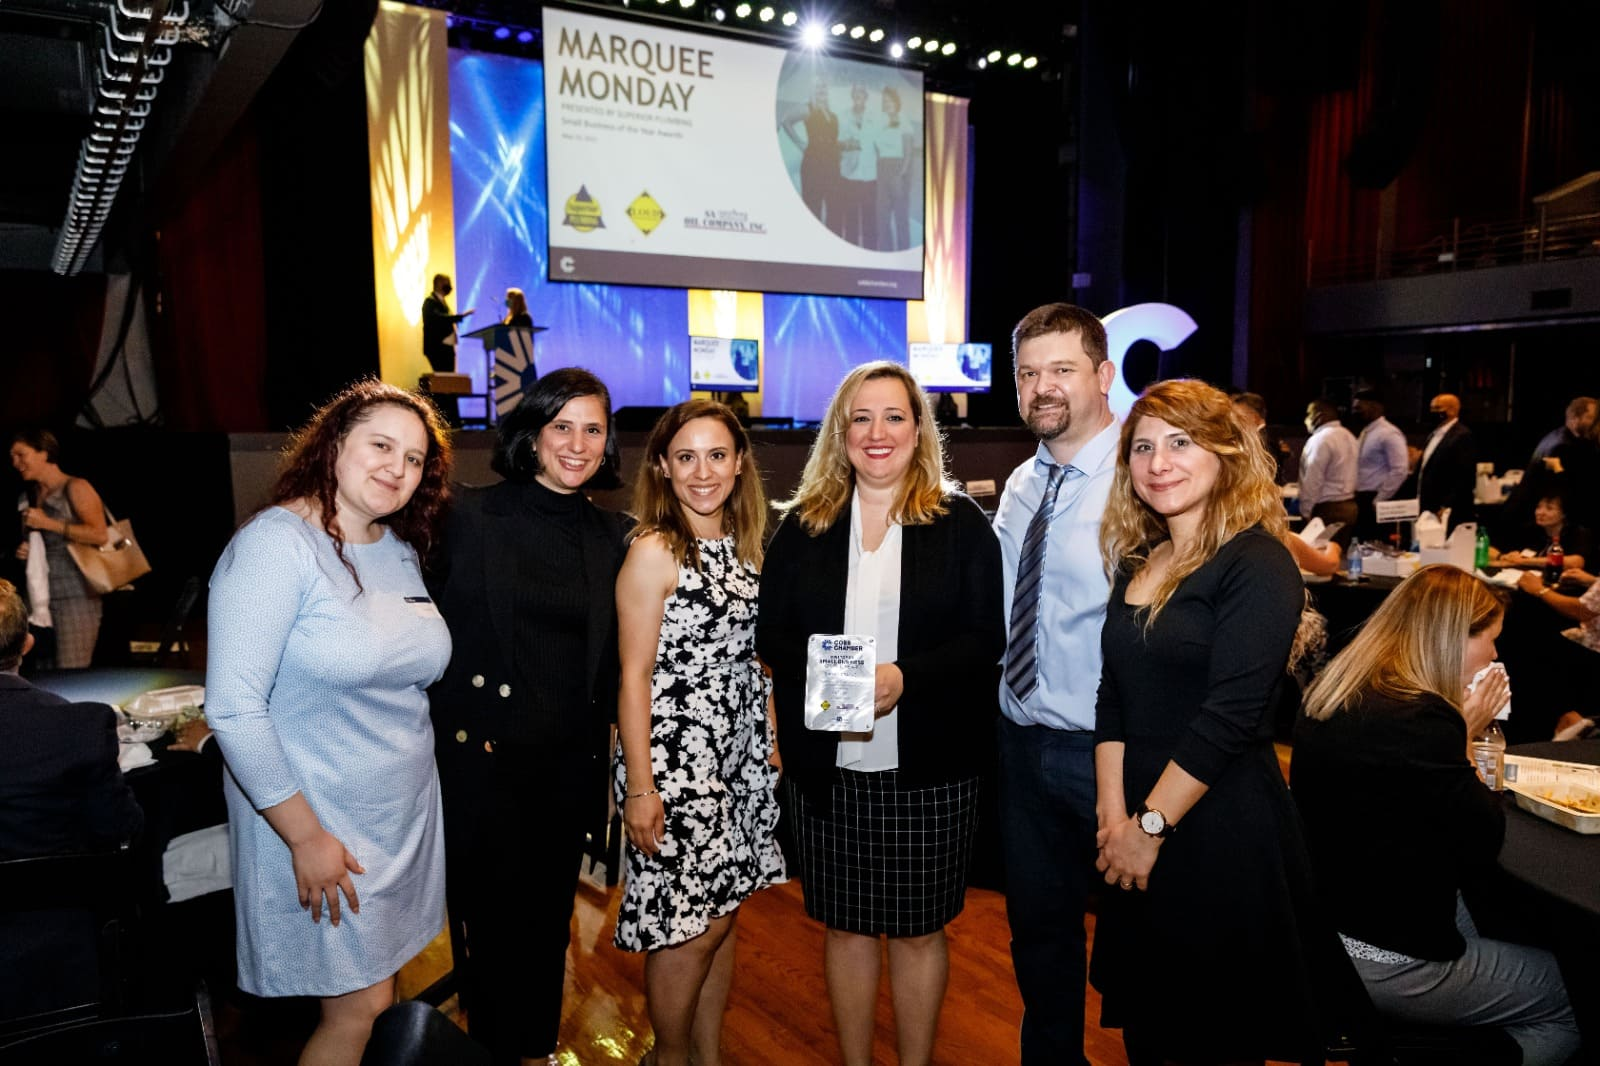 Manay CPA has been selected as on of the top 30 small businesses of the year